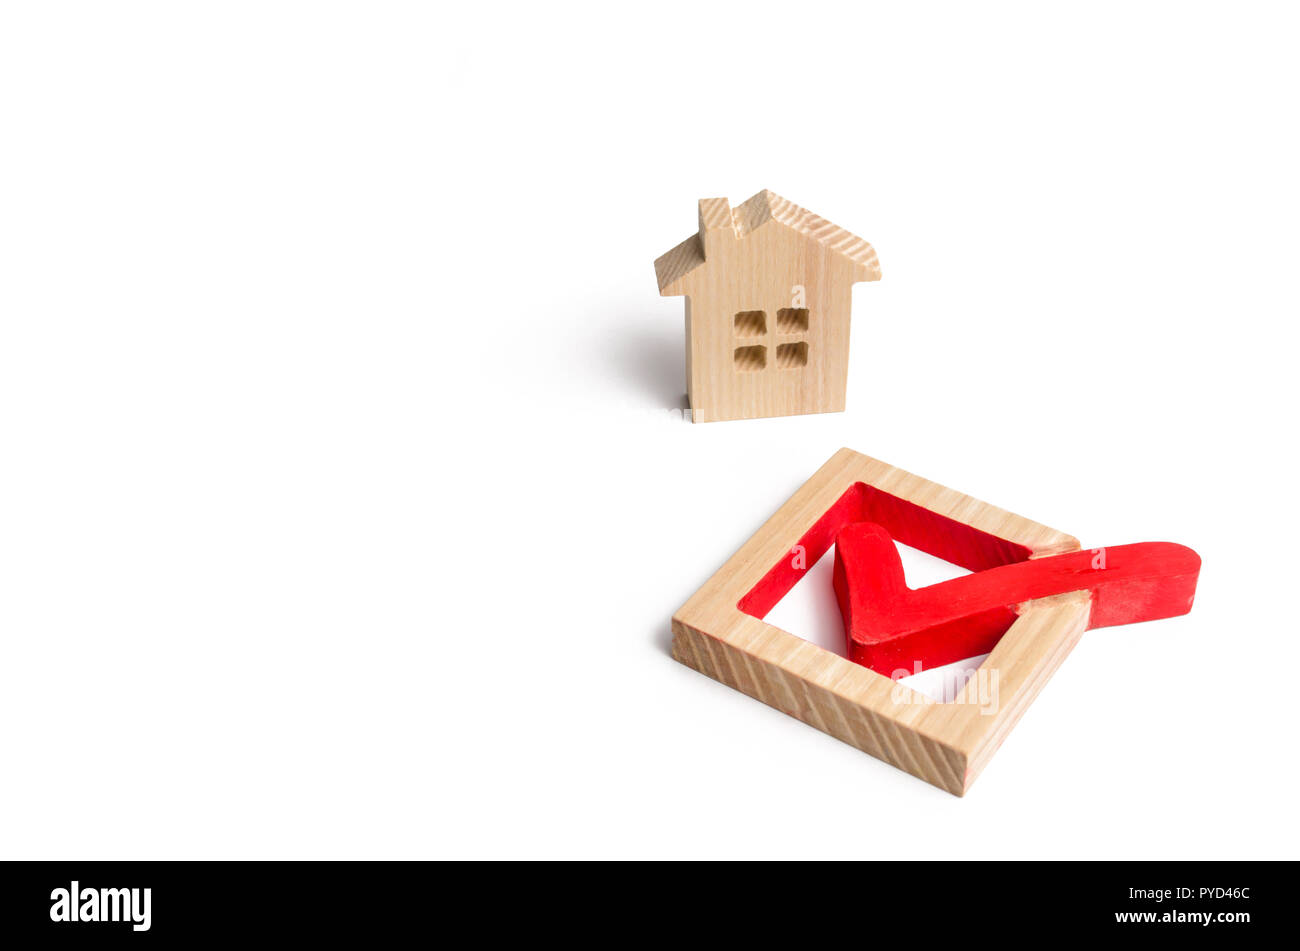 Wooden house and a tick in the box. concept of finding a home and moving to a new home. Standardization, search for the best option. Renovation and re - Stock Image